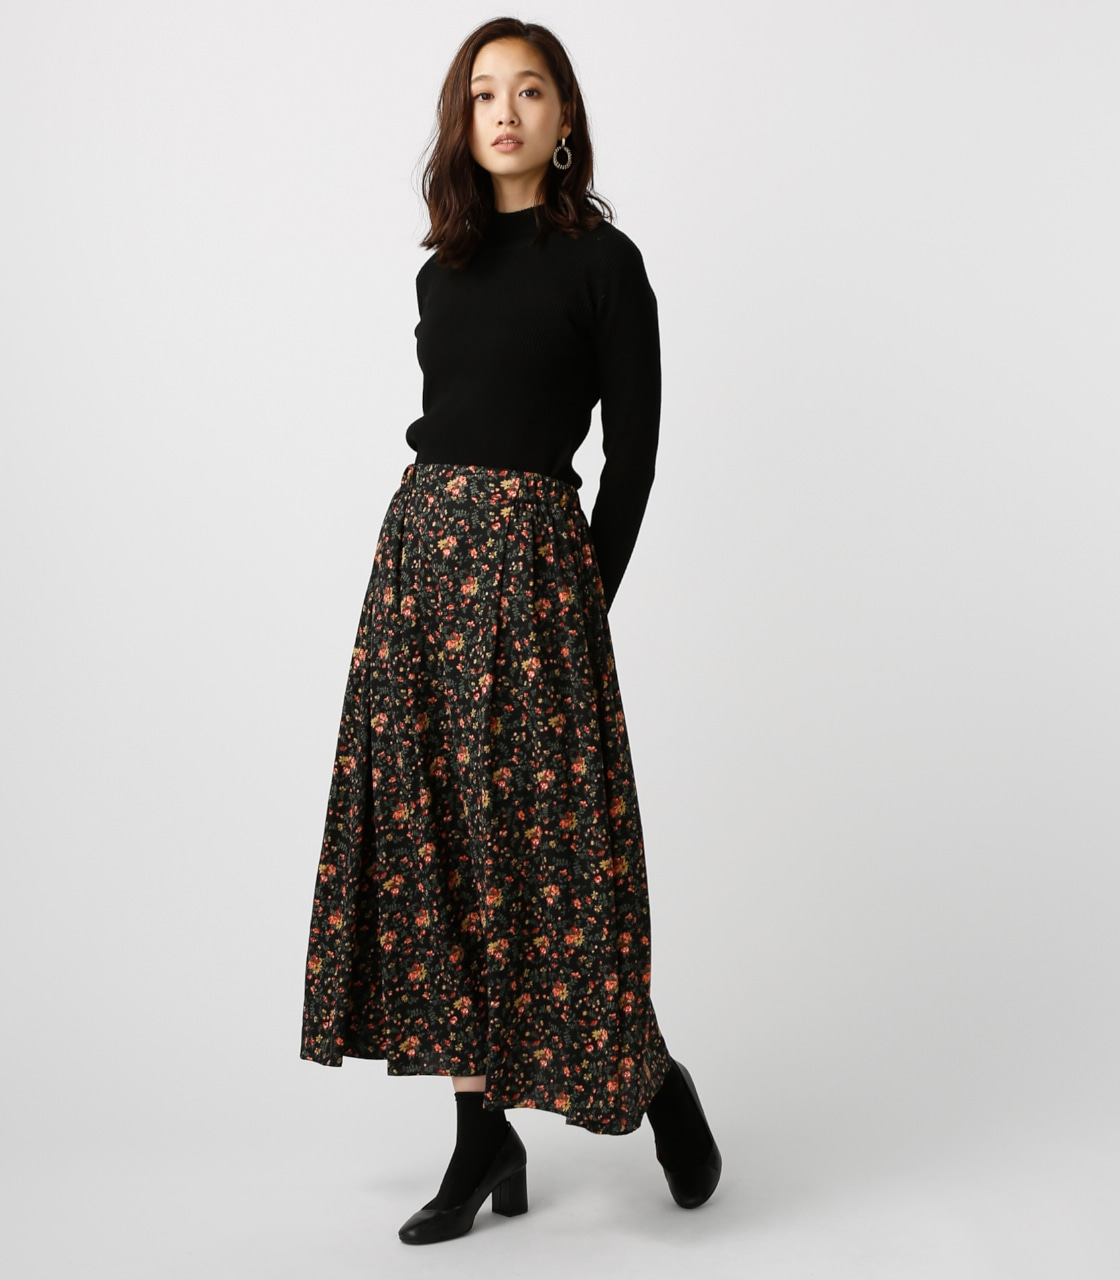 【AZUL BY MOUSSY】ローズブーケ柄ロングスカート 詳細画像 柄BLK 3